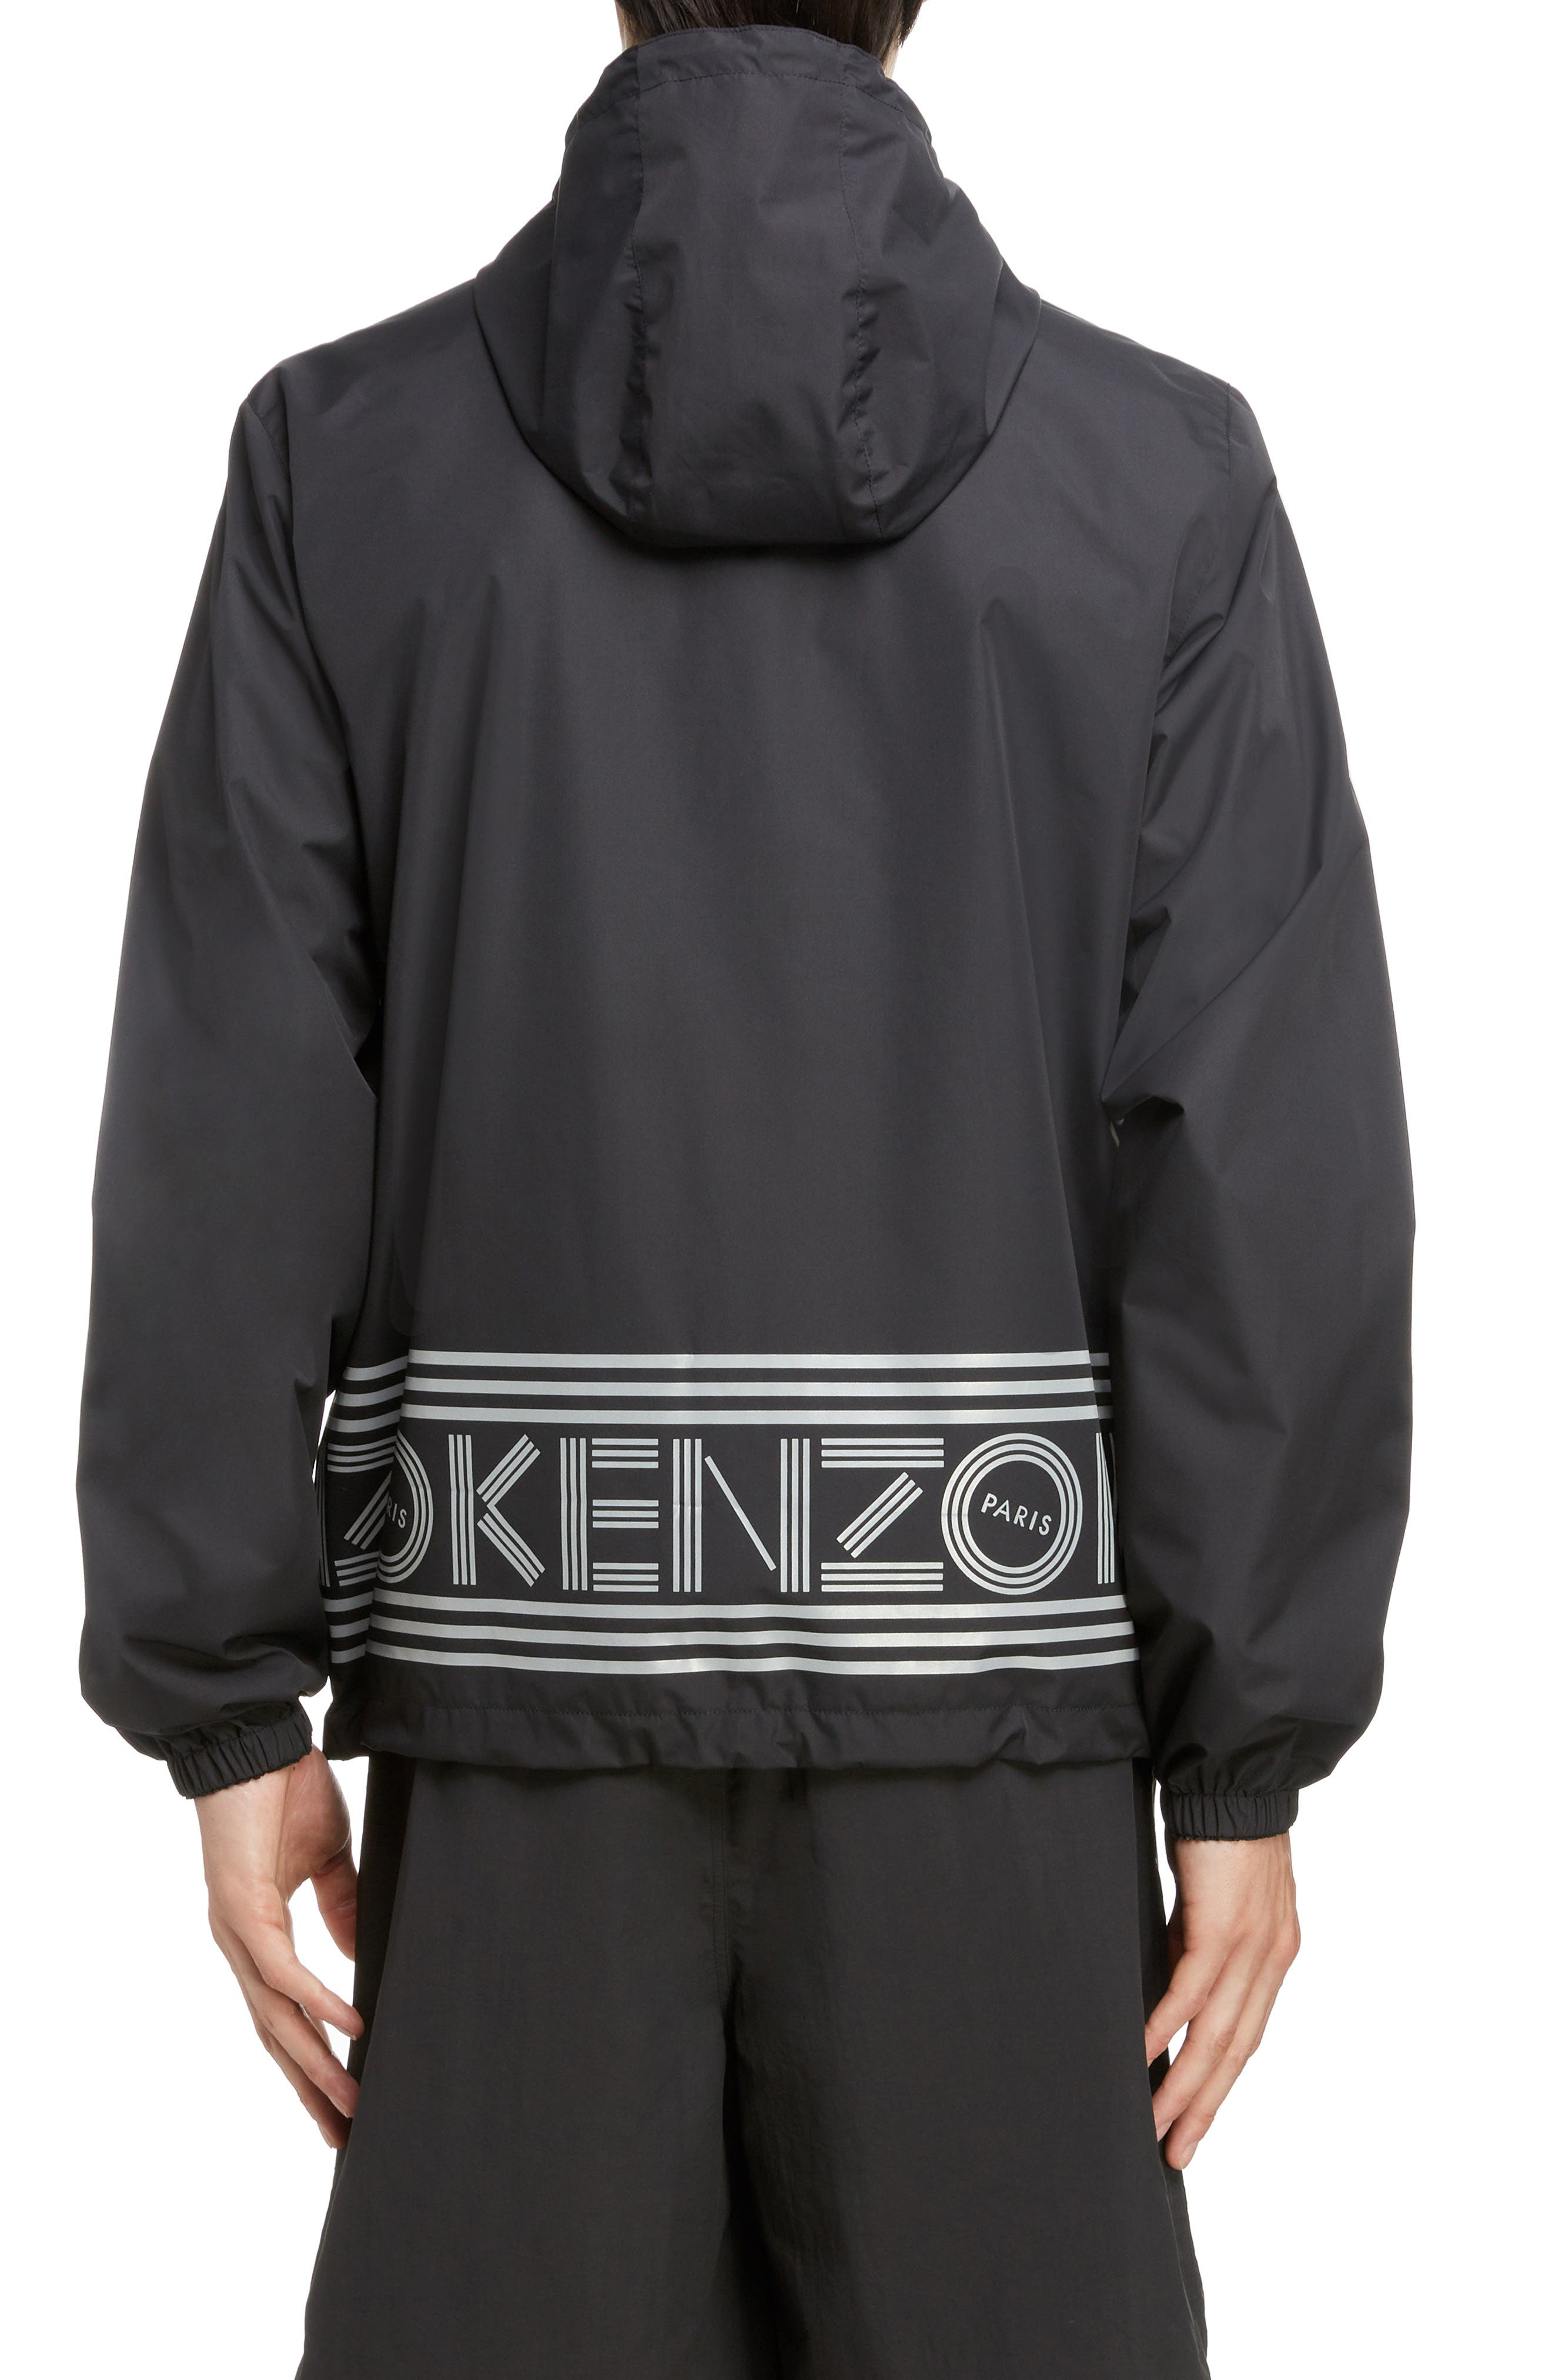 KENZO, Reversible Hooded Windbreaker, Alternate thumbnail 3, color, BLACK